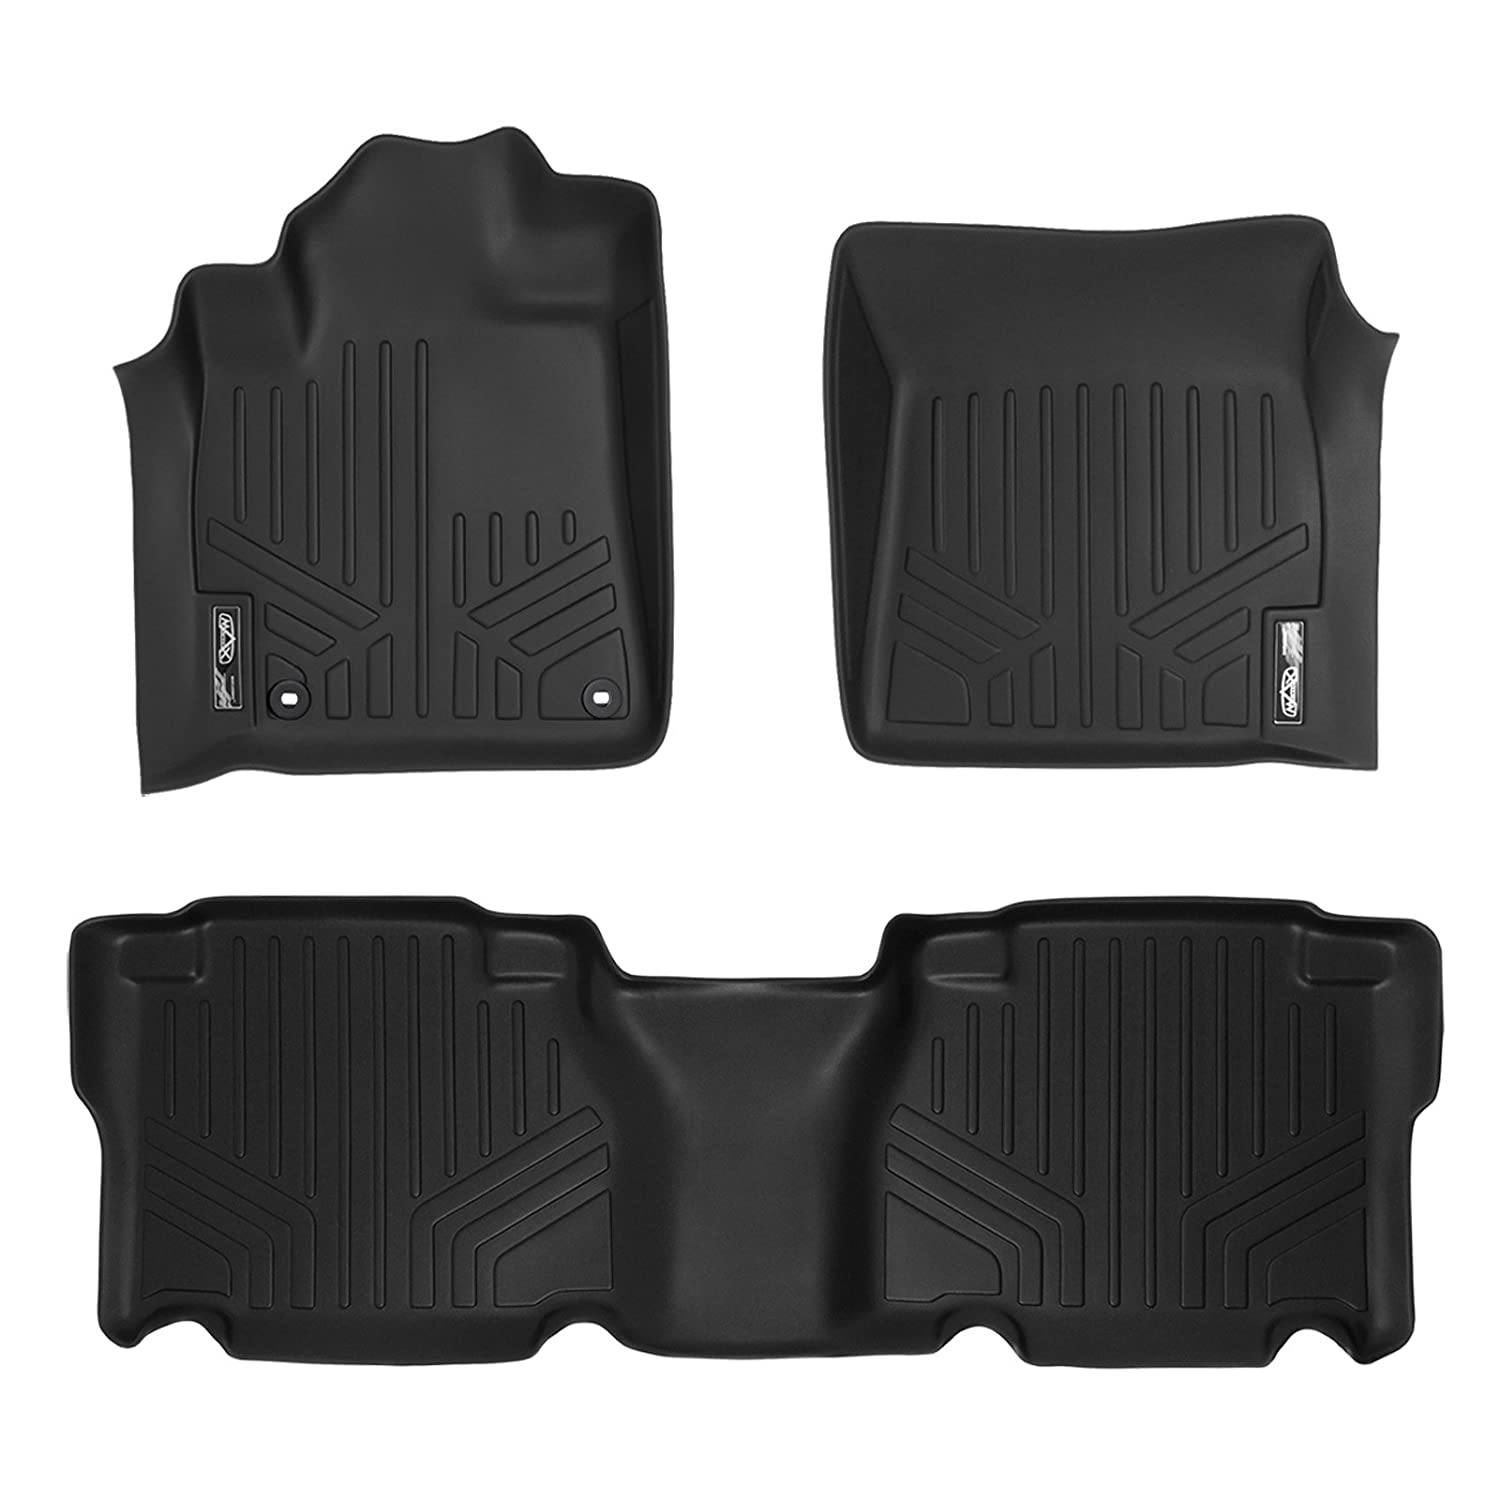 SMARTLINER Custom Fit Floor Mats 2 Row Liner Set Black for 2012-2013 Toyota Tundra CrewMax Cab